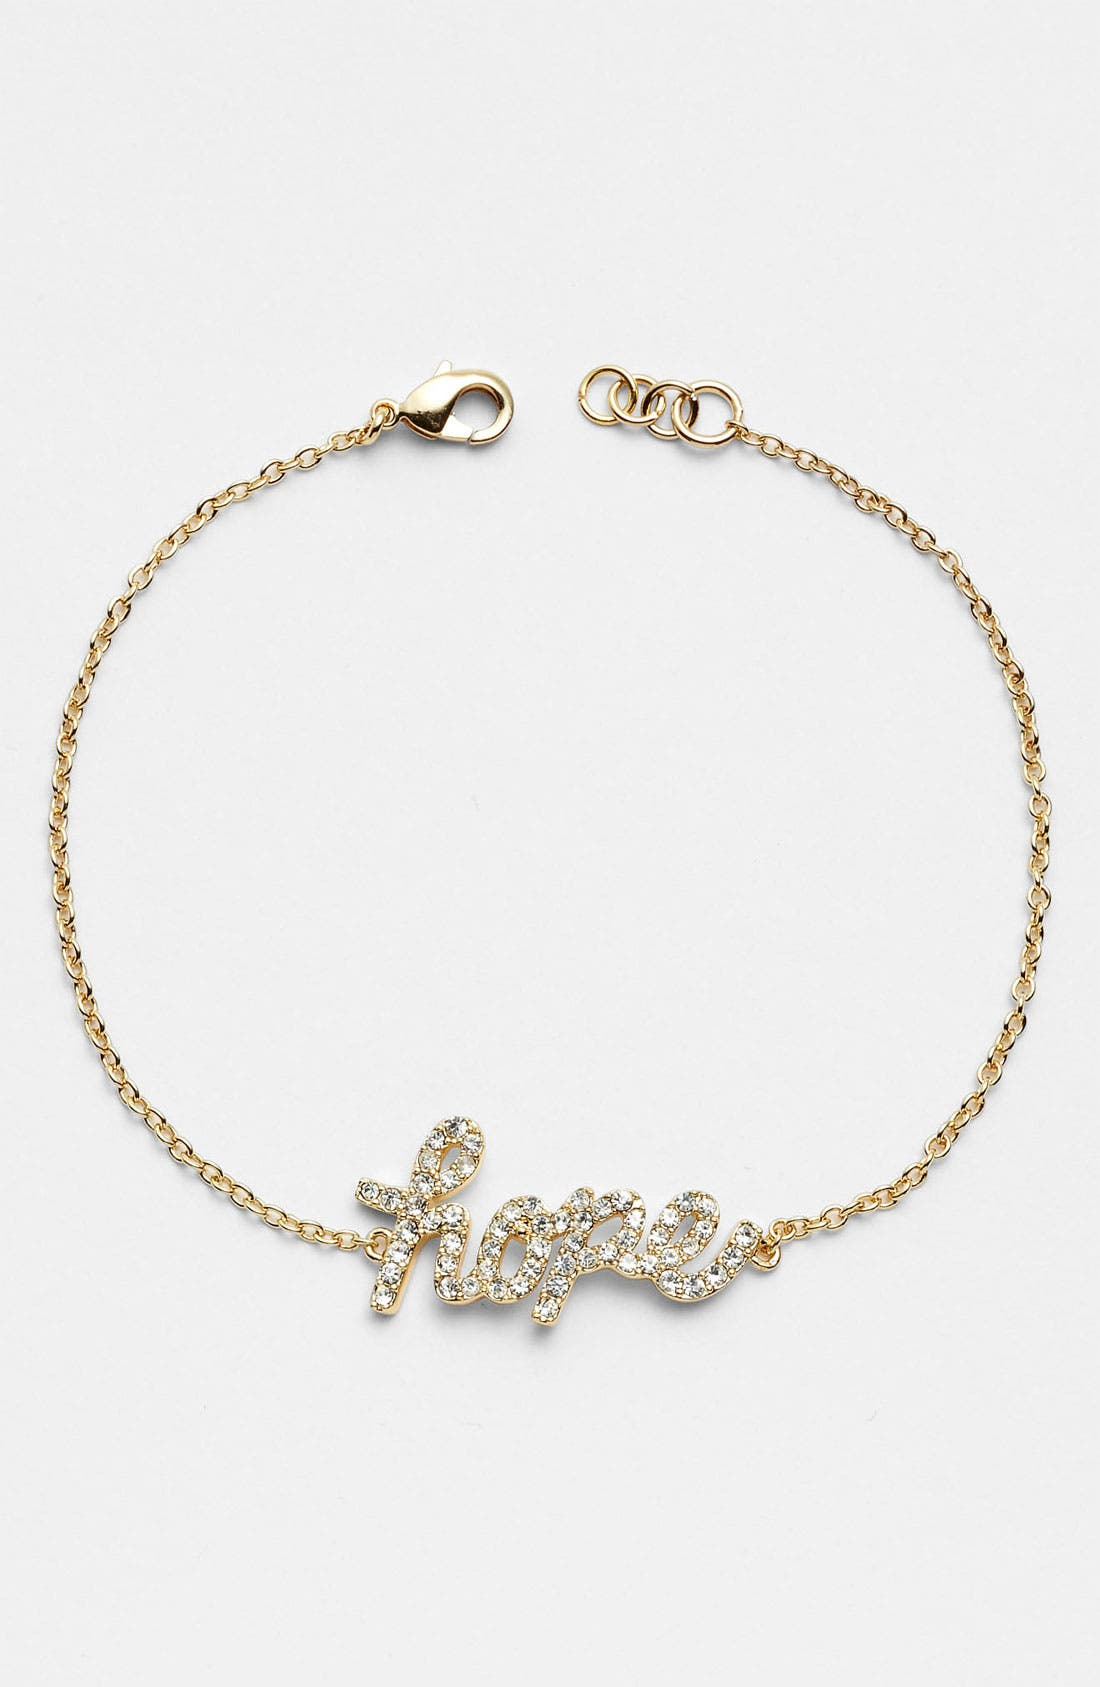 Alternate Image 1 Selected - Ariella Collection 'Messages - Hope' Script Station Bracelet